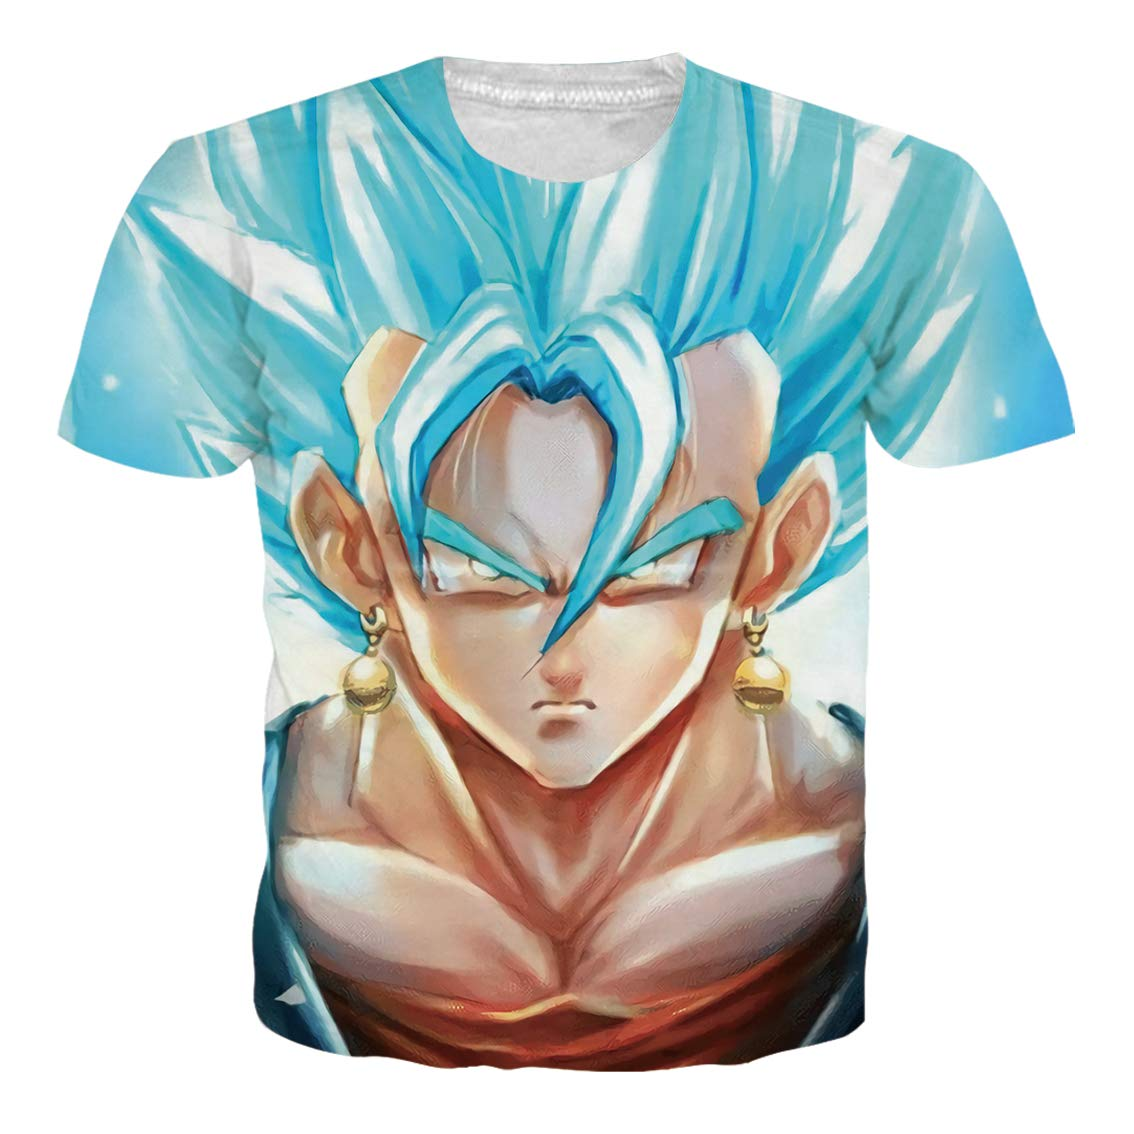 Ocsoc Unisex Anime Dragon Ball Z T-Shirt with Funny Print Cartoon Casual Pullover Tops XL, for Daily Life Leisure